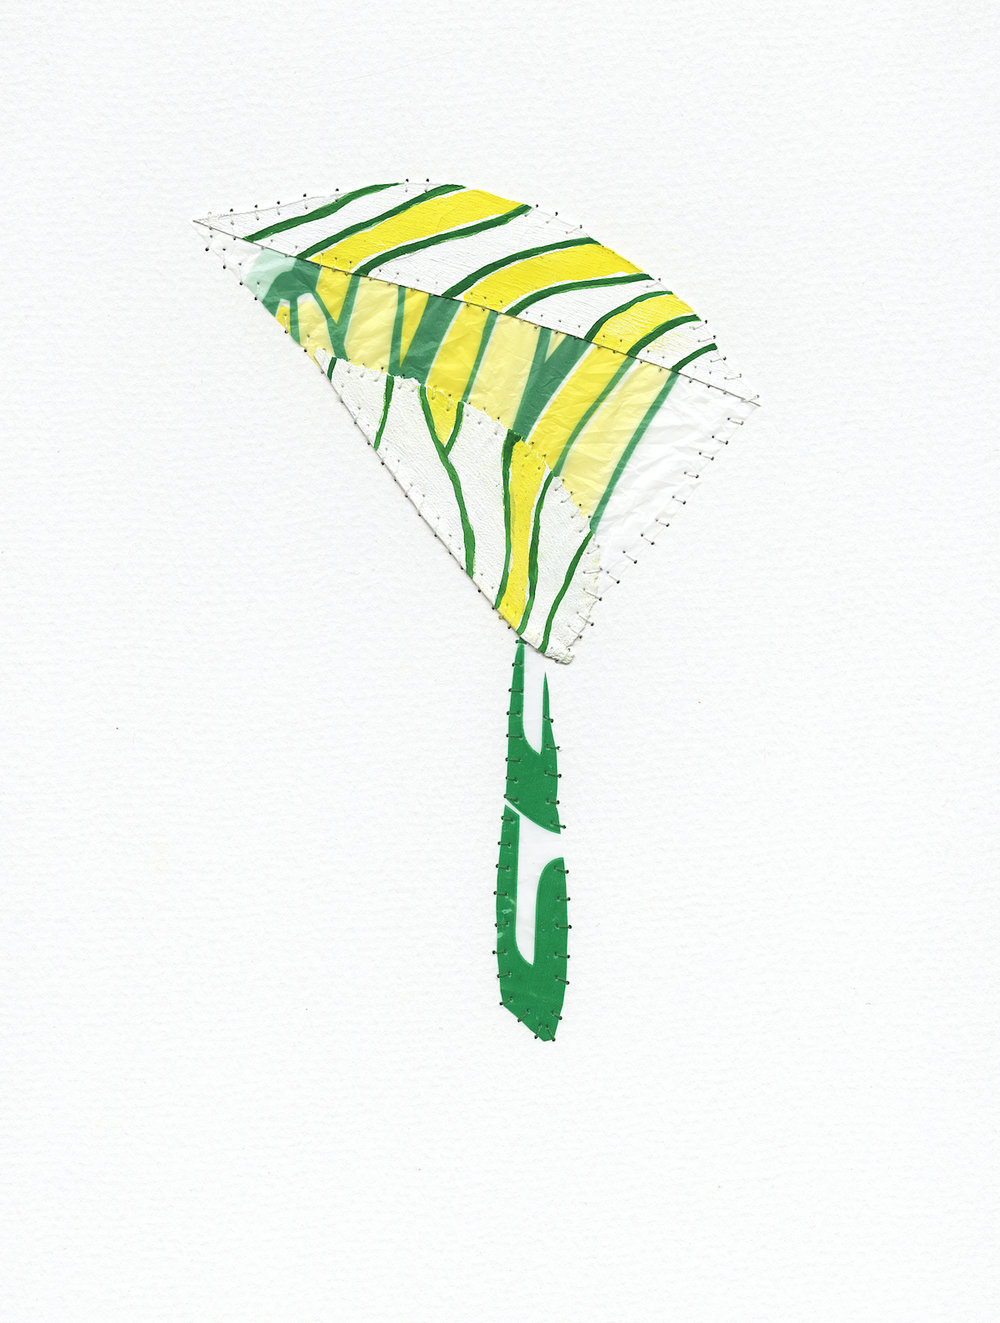 NV#60  , 2011 Leaf, gesso, plastic bag, Flashe paint, thread on paper 12 x 9 in.